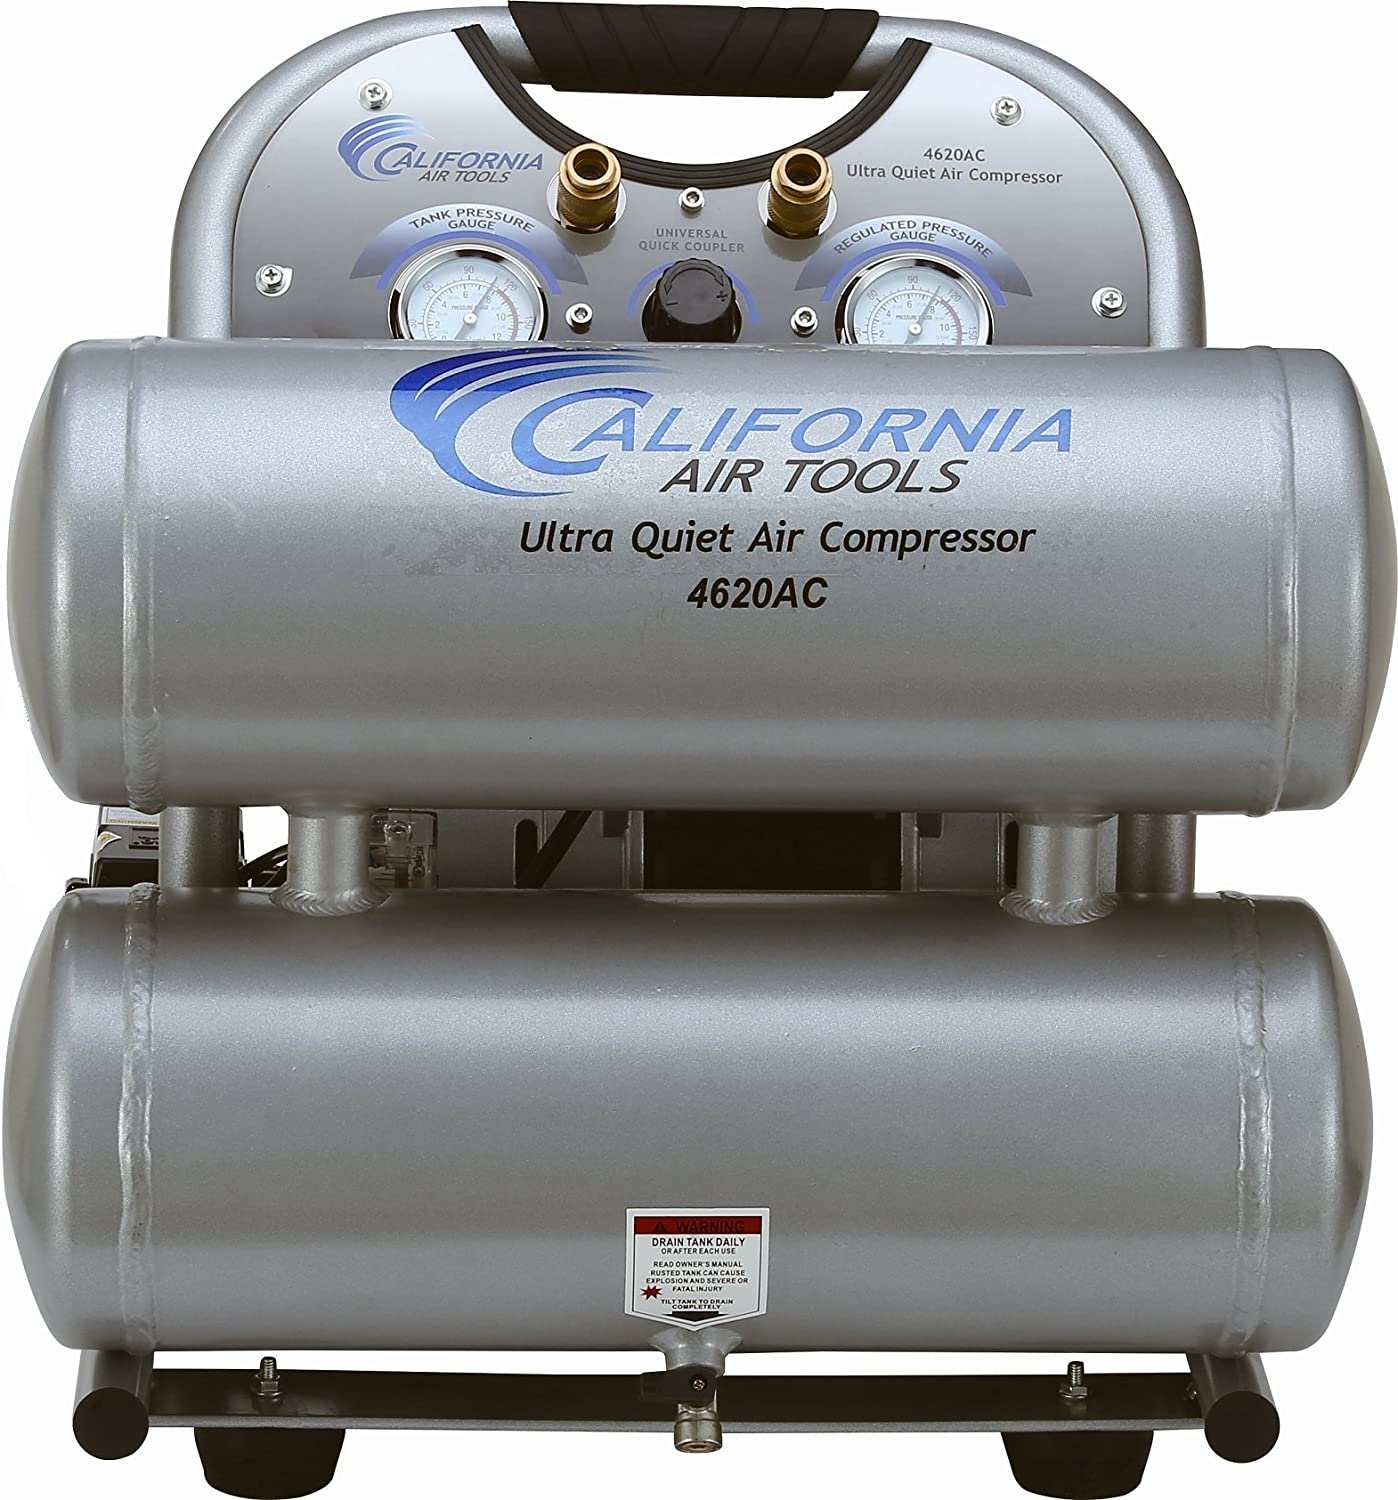 California Air Tools CAT-4620AC Ultra Quiet Oil-Free 2.0 hp 4.0 gallon Aluminum Twin Tank Electric Portable Air Compressor, Silver